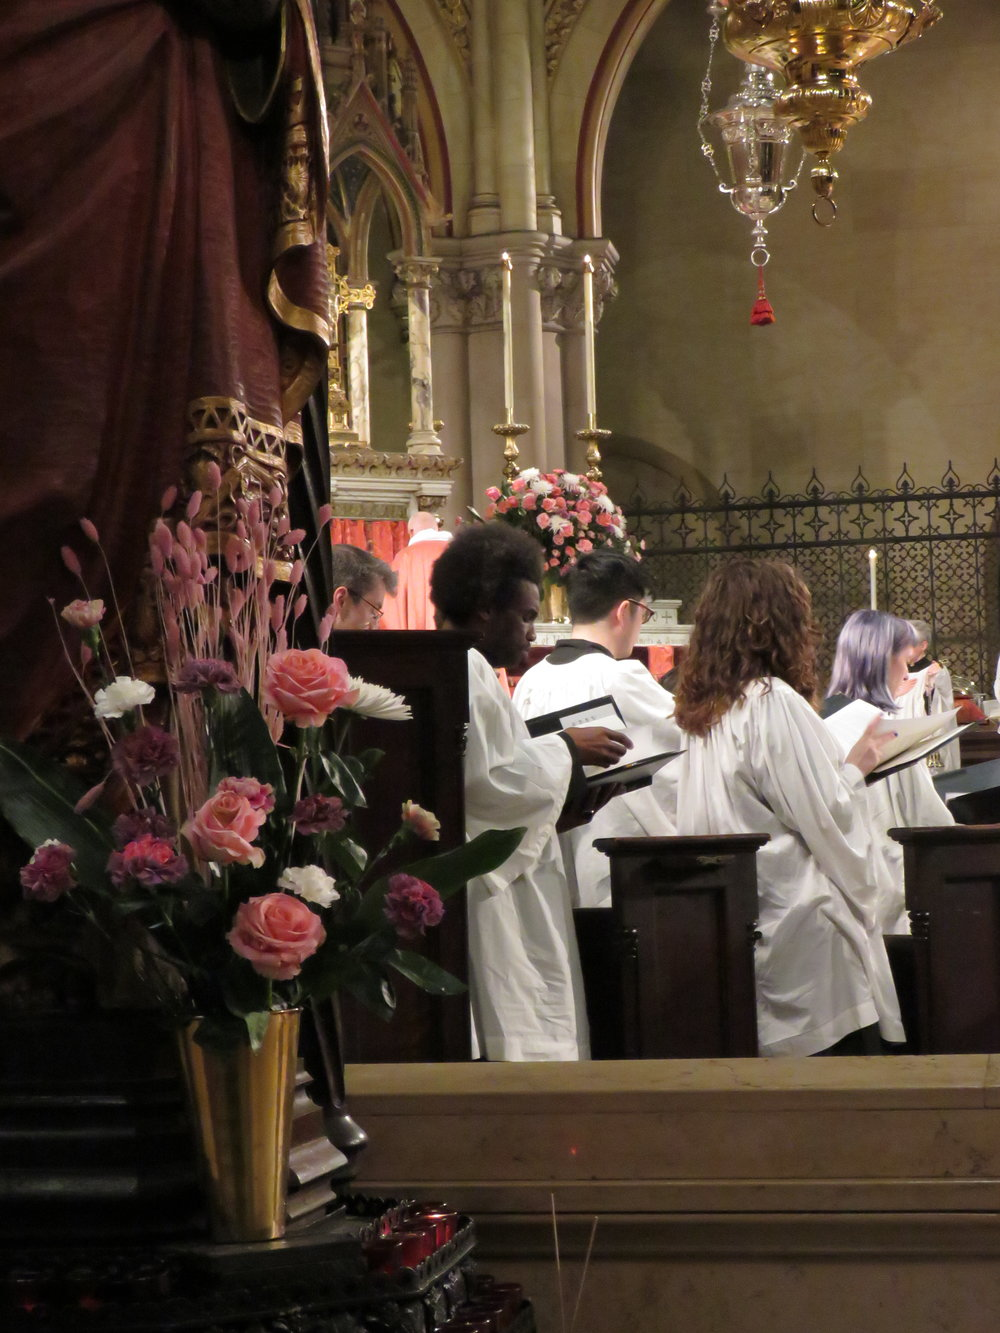 On the Sundays in Lent, the choir sings from the chancel. The choir is finishing the traditional Latin entrance song for this Sunday,  Laetare Ierusalem (Rejoice , O Jerusalem).    Photo by Damien Joseph SSF